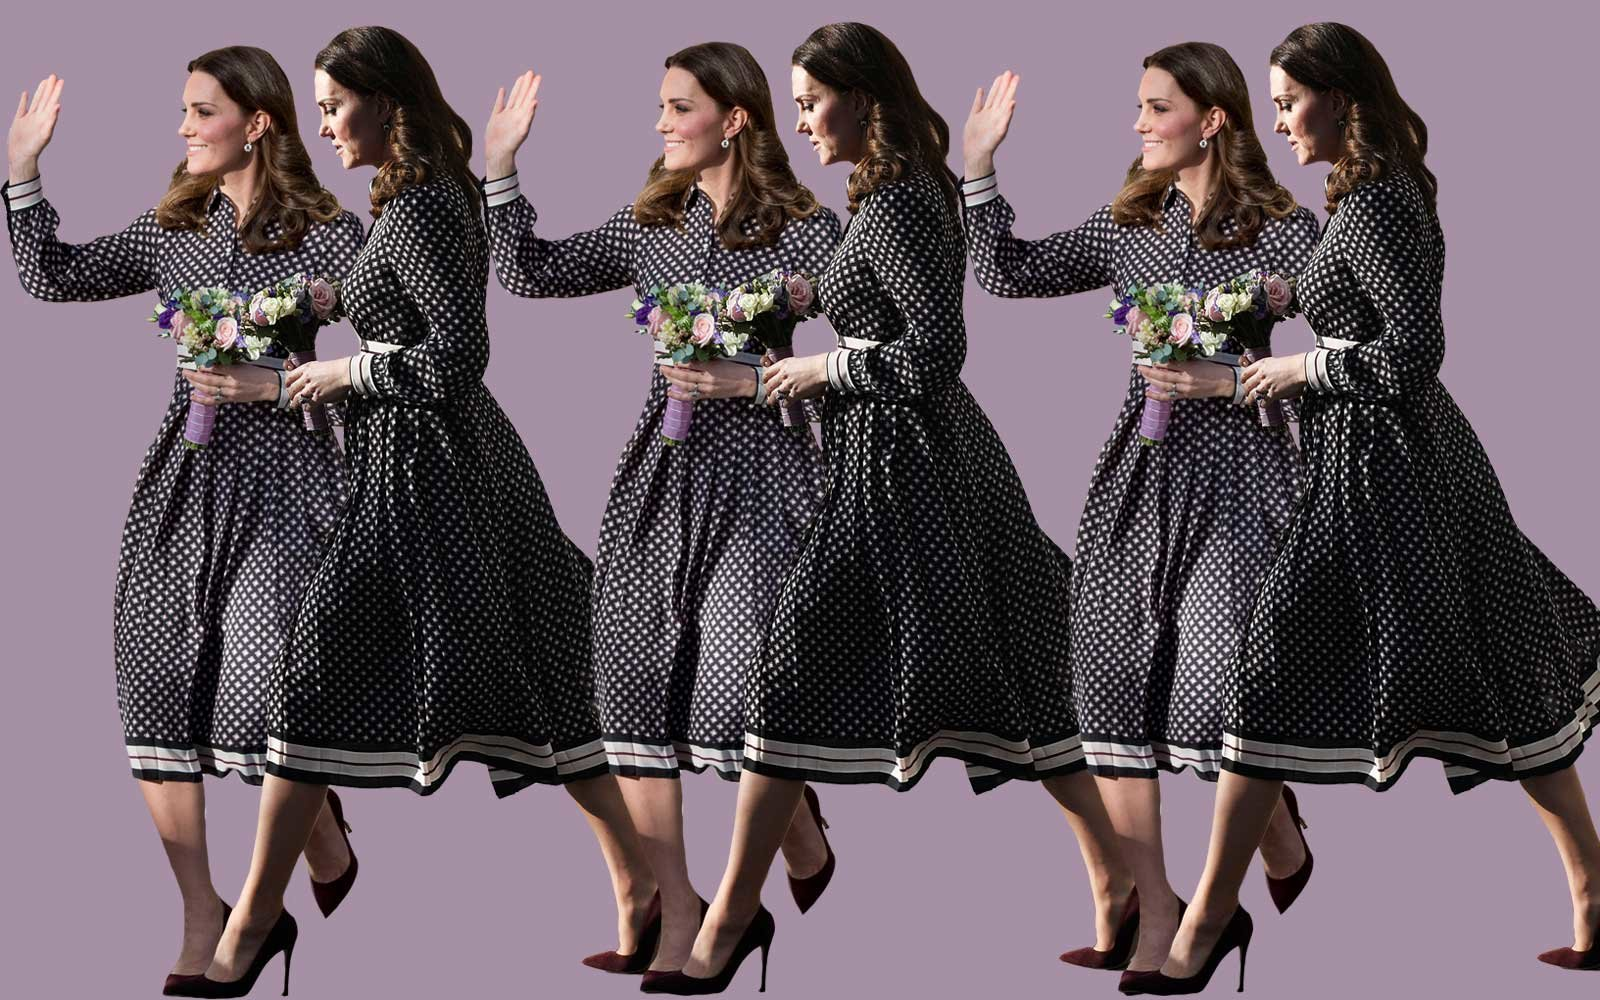 Kate Middleton in Kate Spade dress